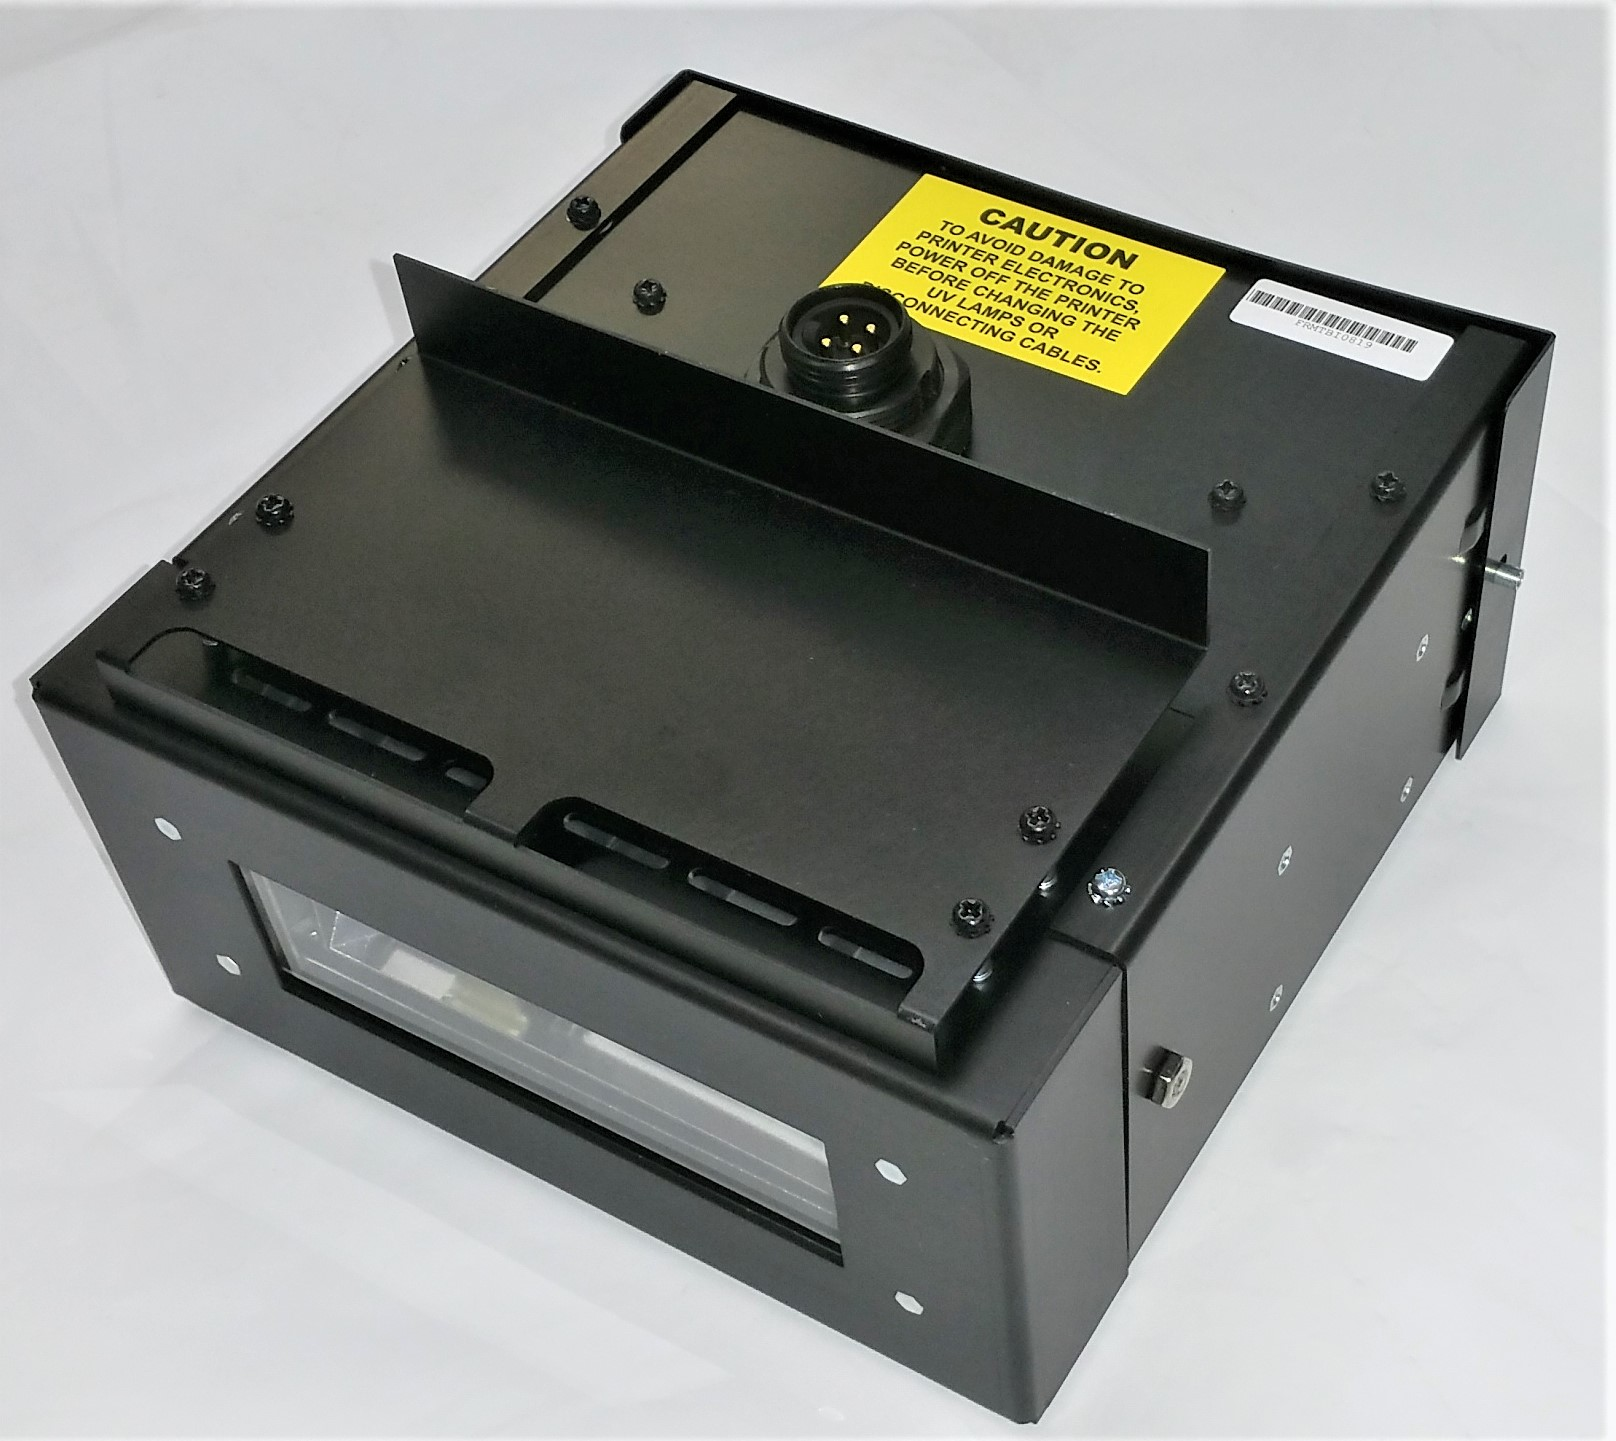 Service-side lamp housing - It does not include a bulb - For the Scitex FB500 printer